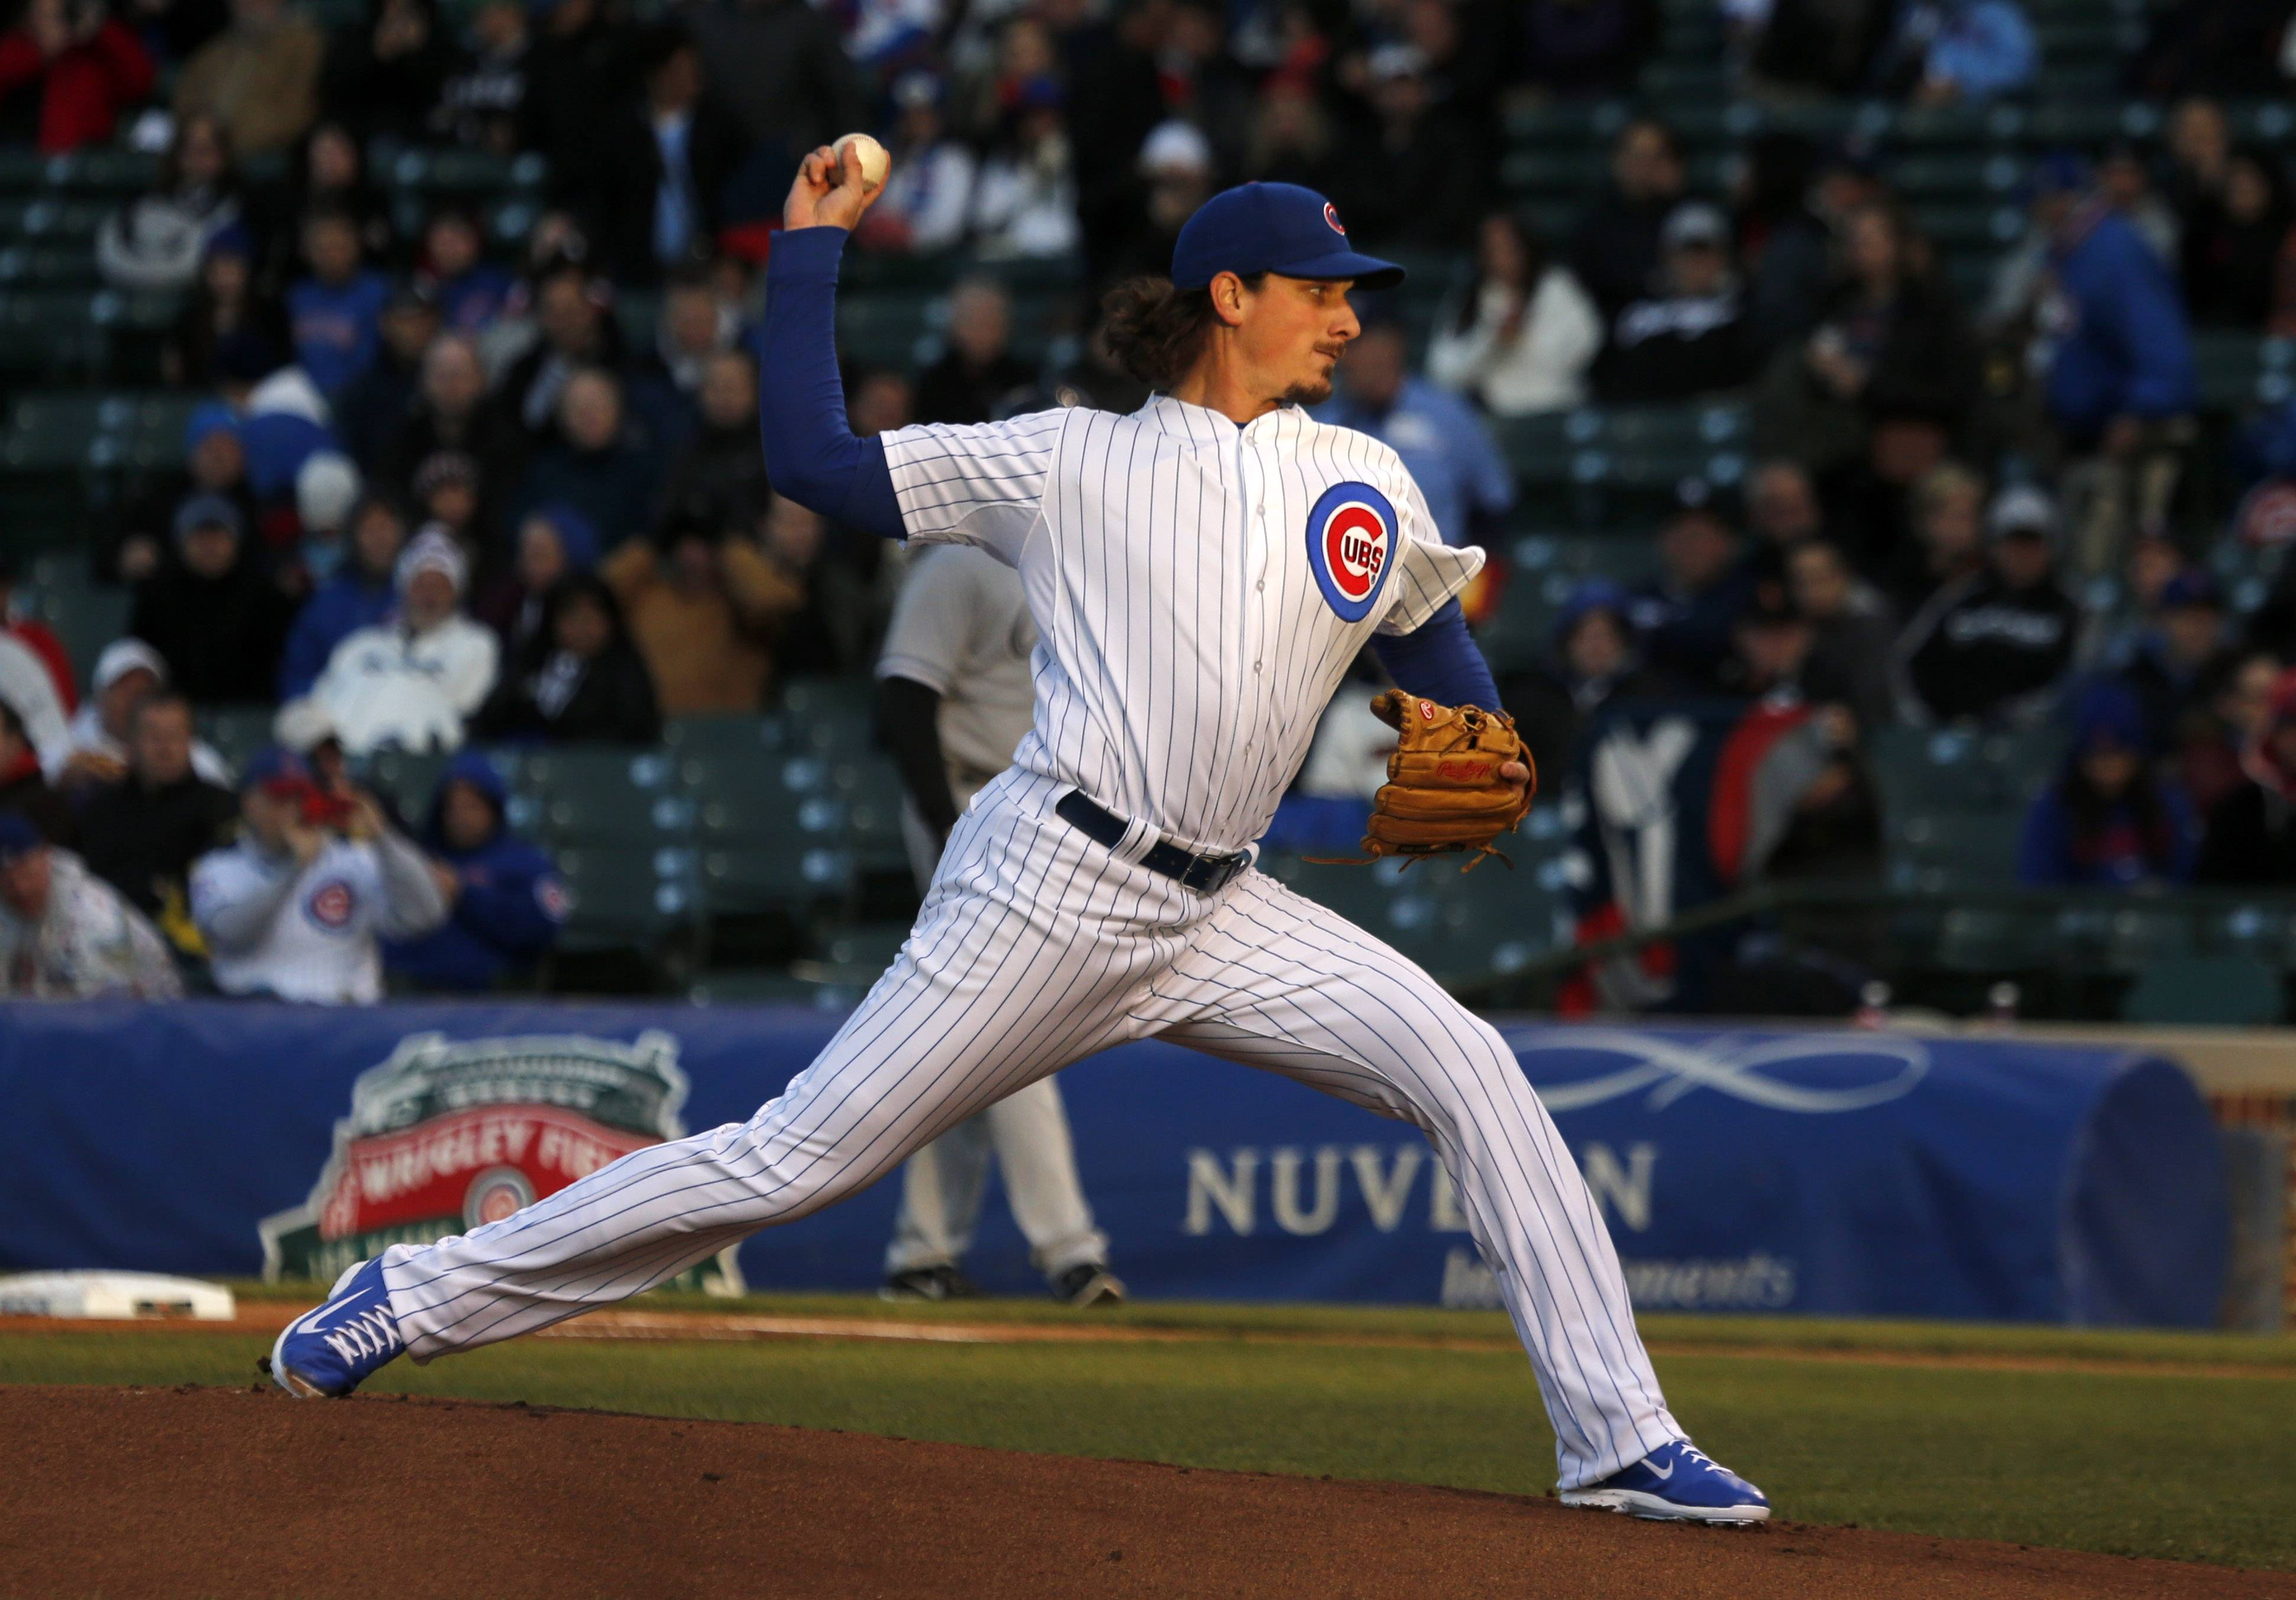 Cubs starting pitcher Jeff Samardzija delivers in a late setting sun during the first inning of an interleague baseball game against the White Sox Monday, May 5, 2014, at Wrigley Field.